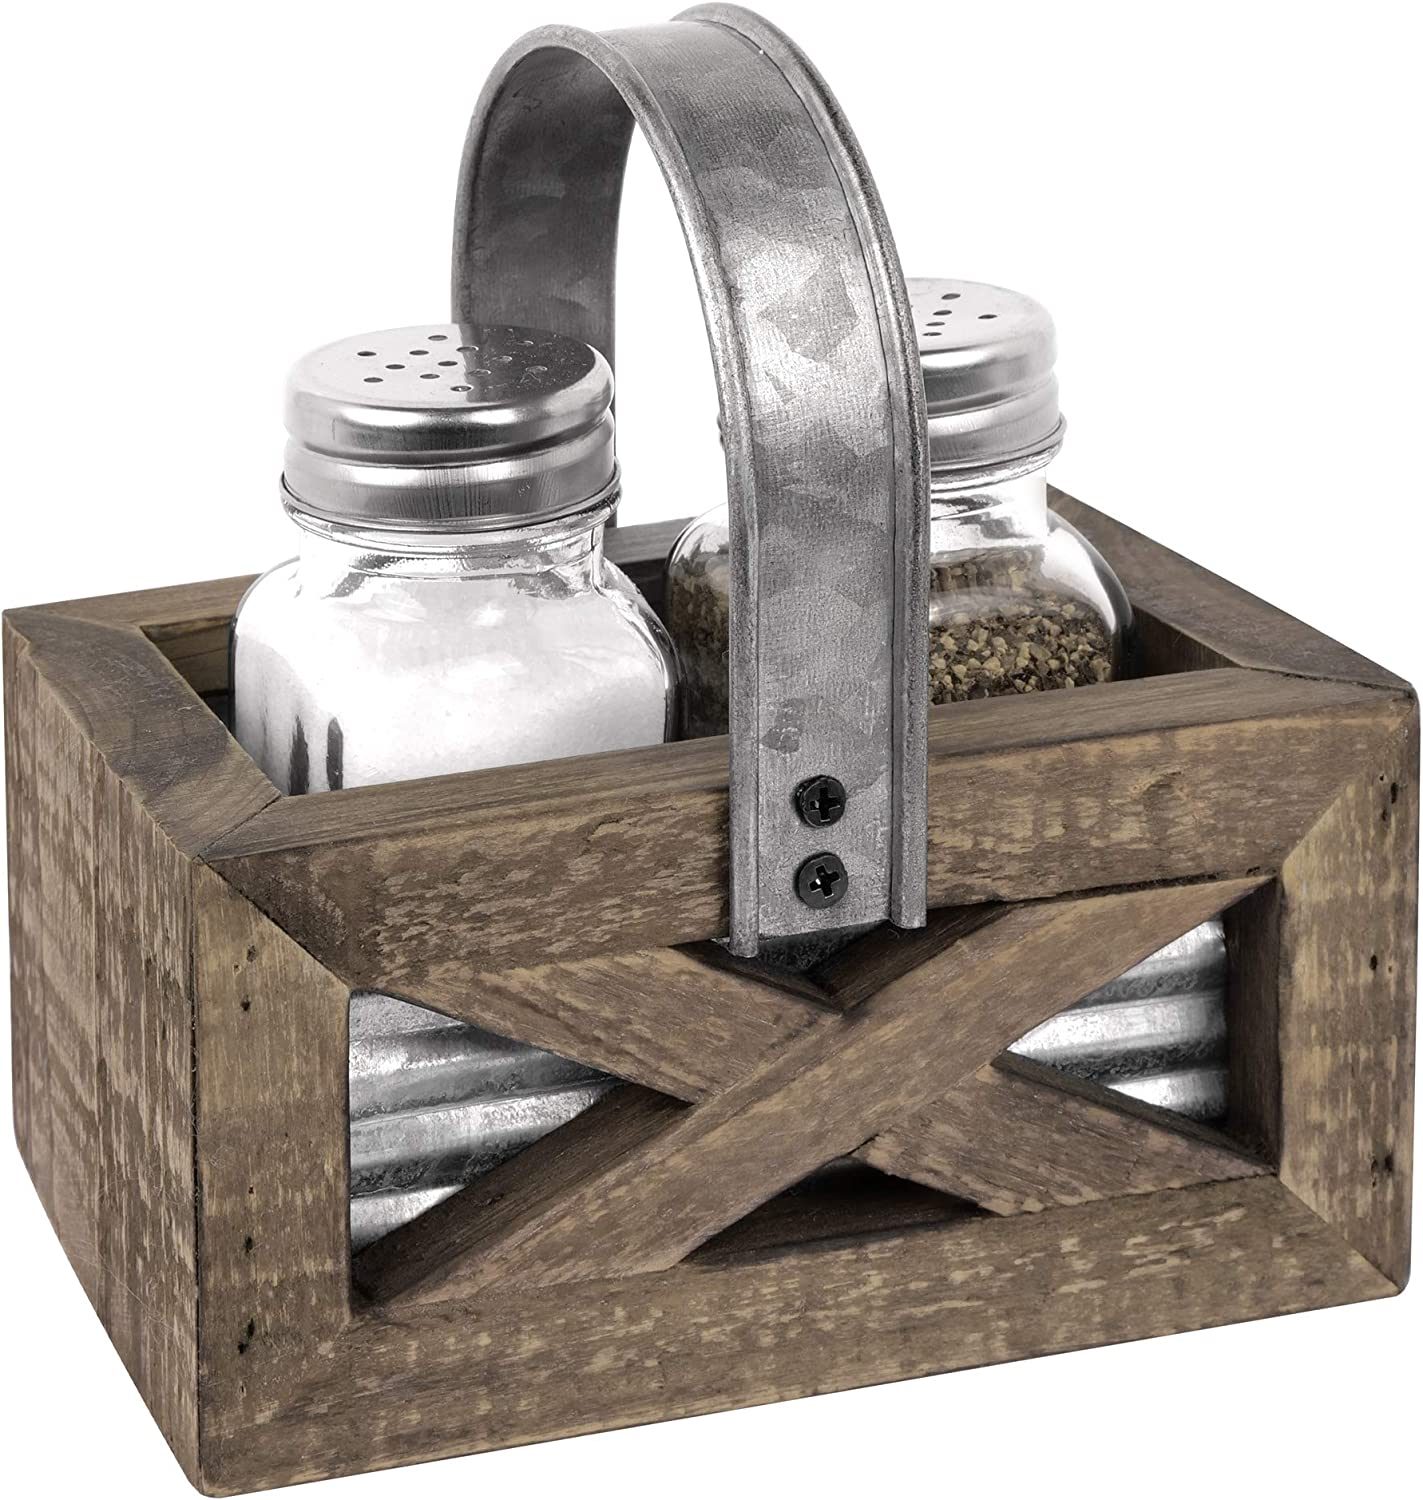 Autumn Alley Barn Door Rustic Salt and Pepper Shakers Set in Wood and Galvanized Caddy | Farmhouse Salt and Pepper Shakers For Rustic Kitchen Decor | Rustic Kitchen Accessory for your Country Kitchen